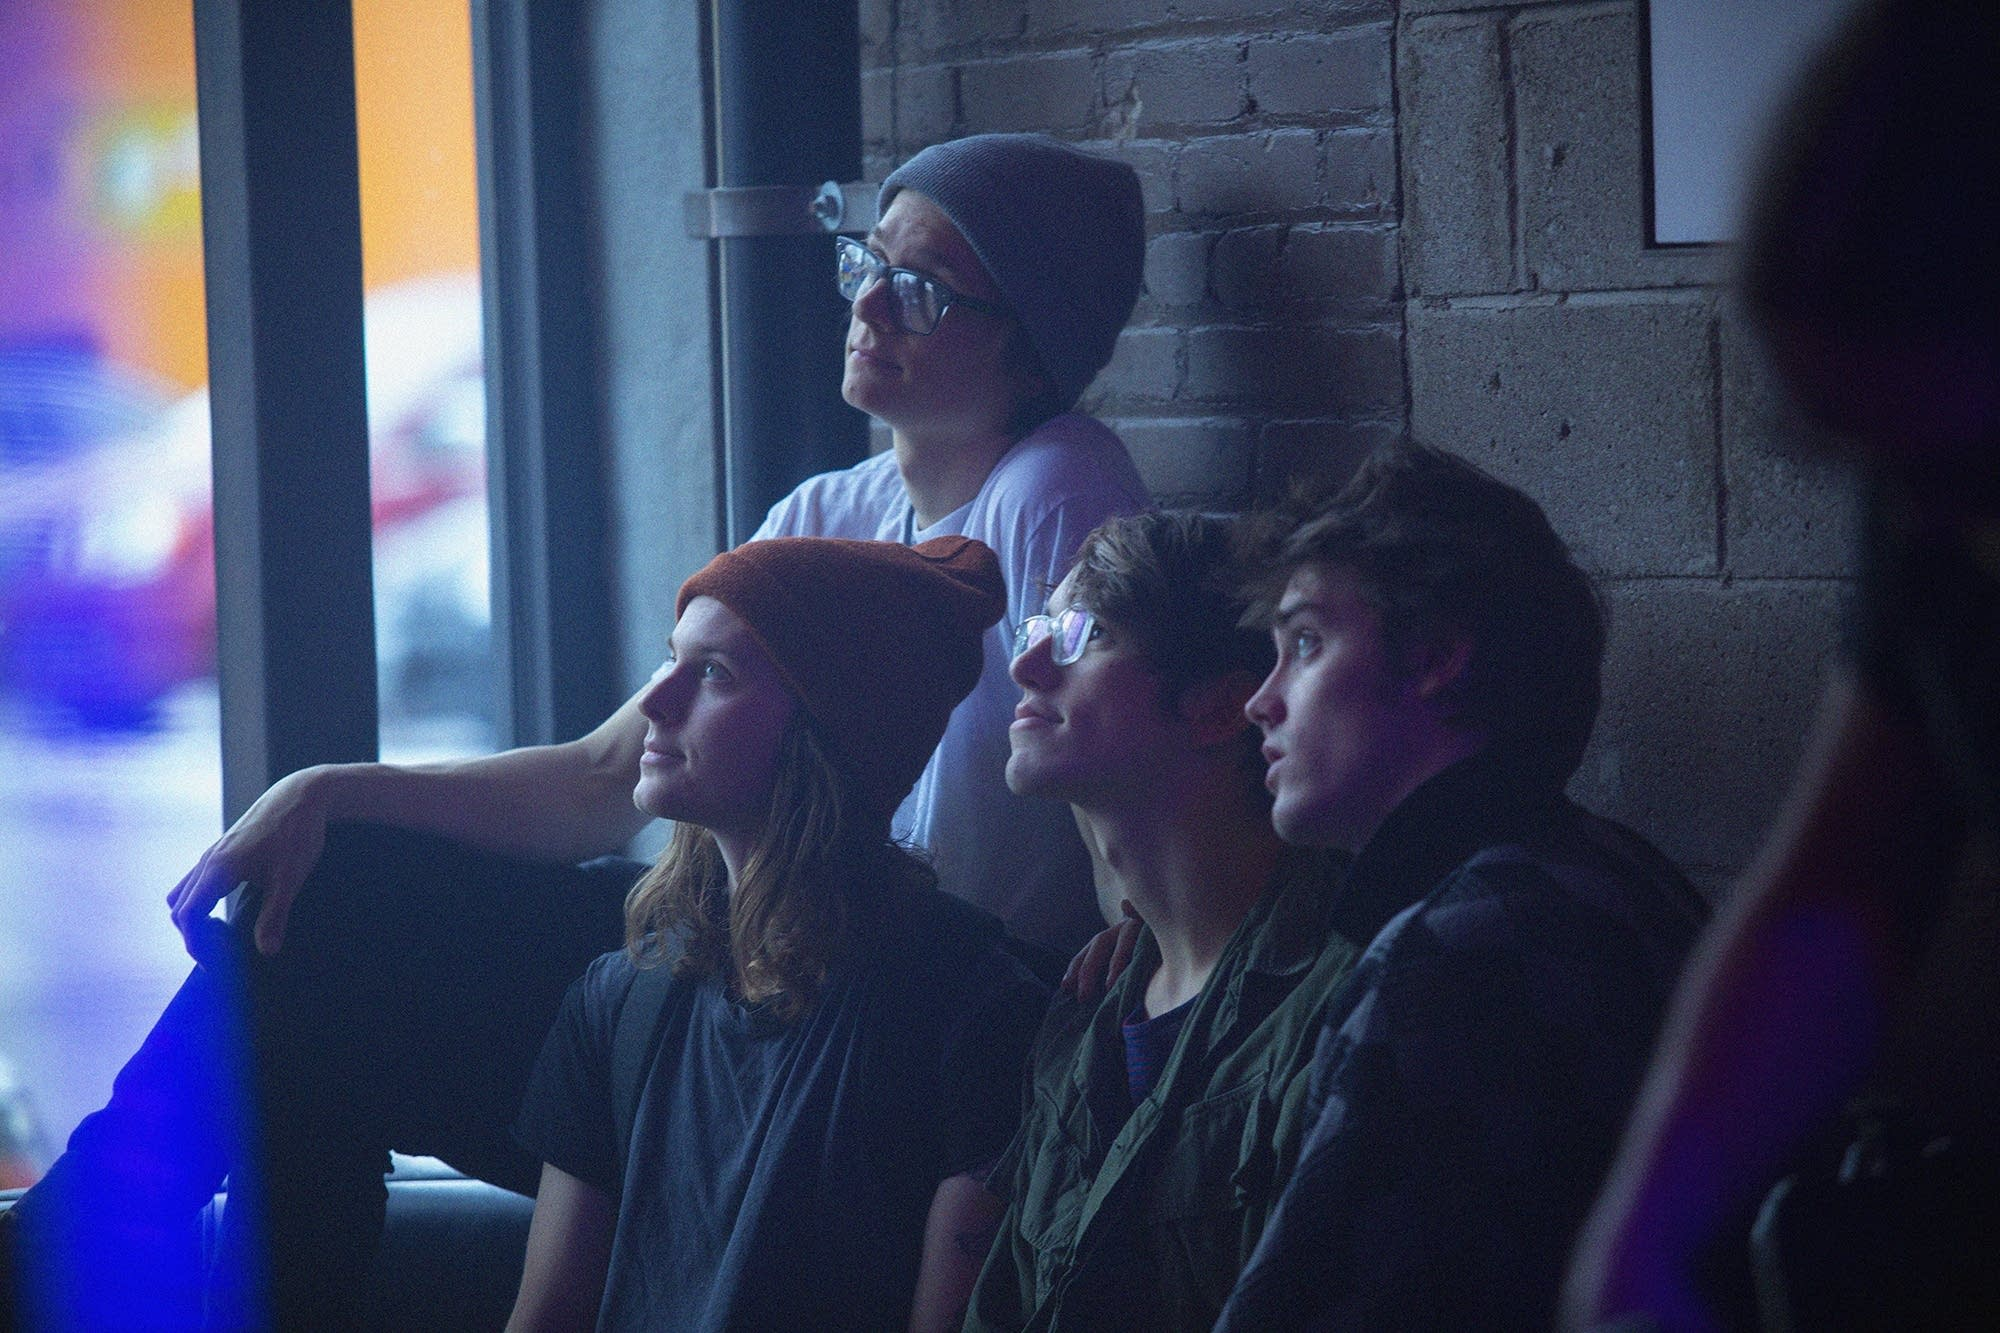 Hippo Campus perform 'landmark' at Icehouse